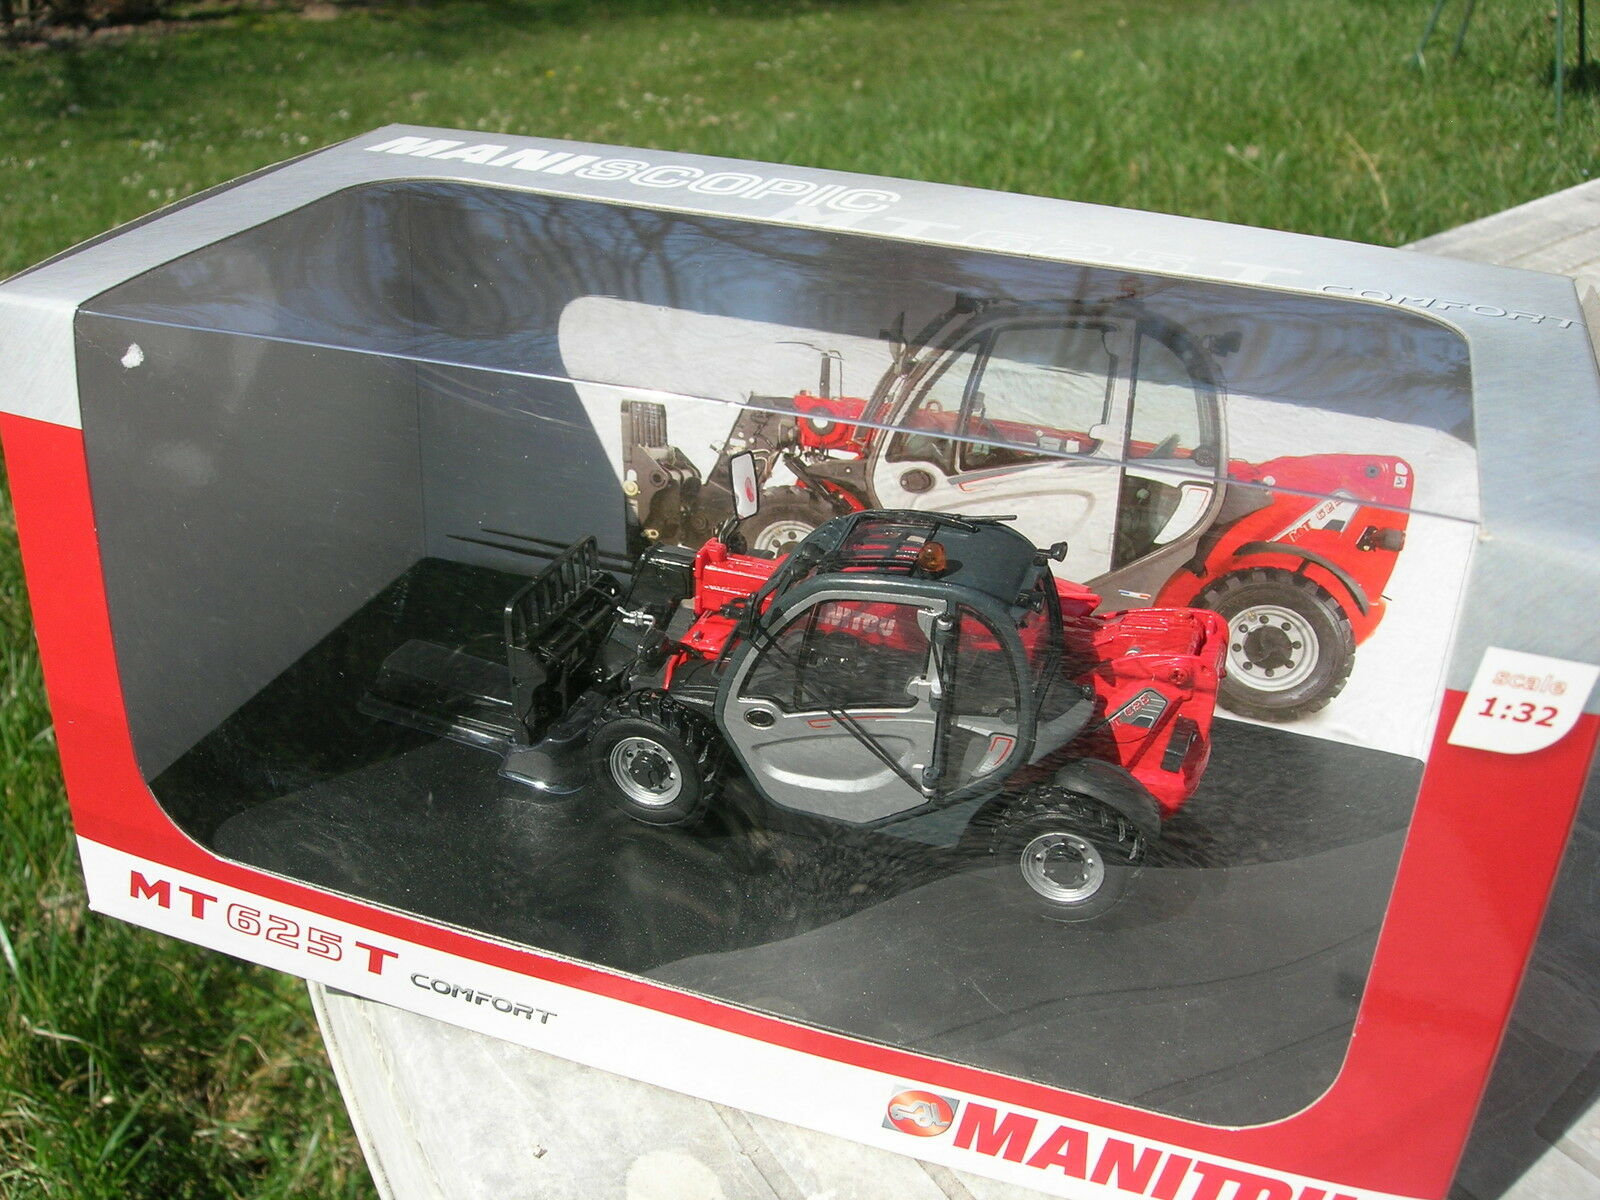 UNIVERSAL HOBBIES1 32 MANITOU MT625T Comfort engin de chantier REF575868